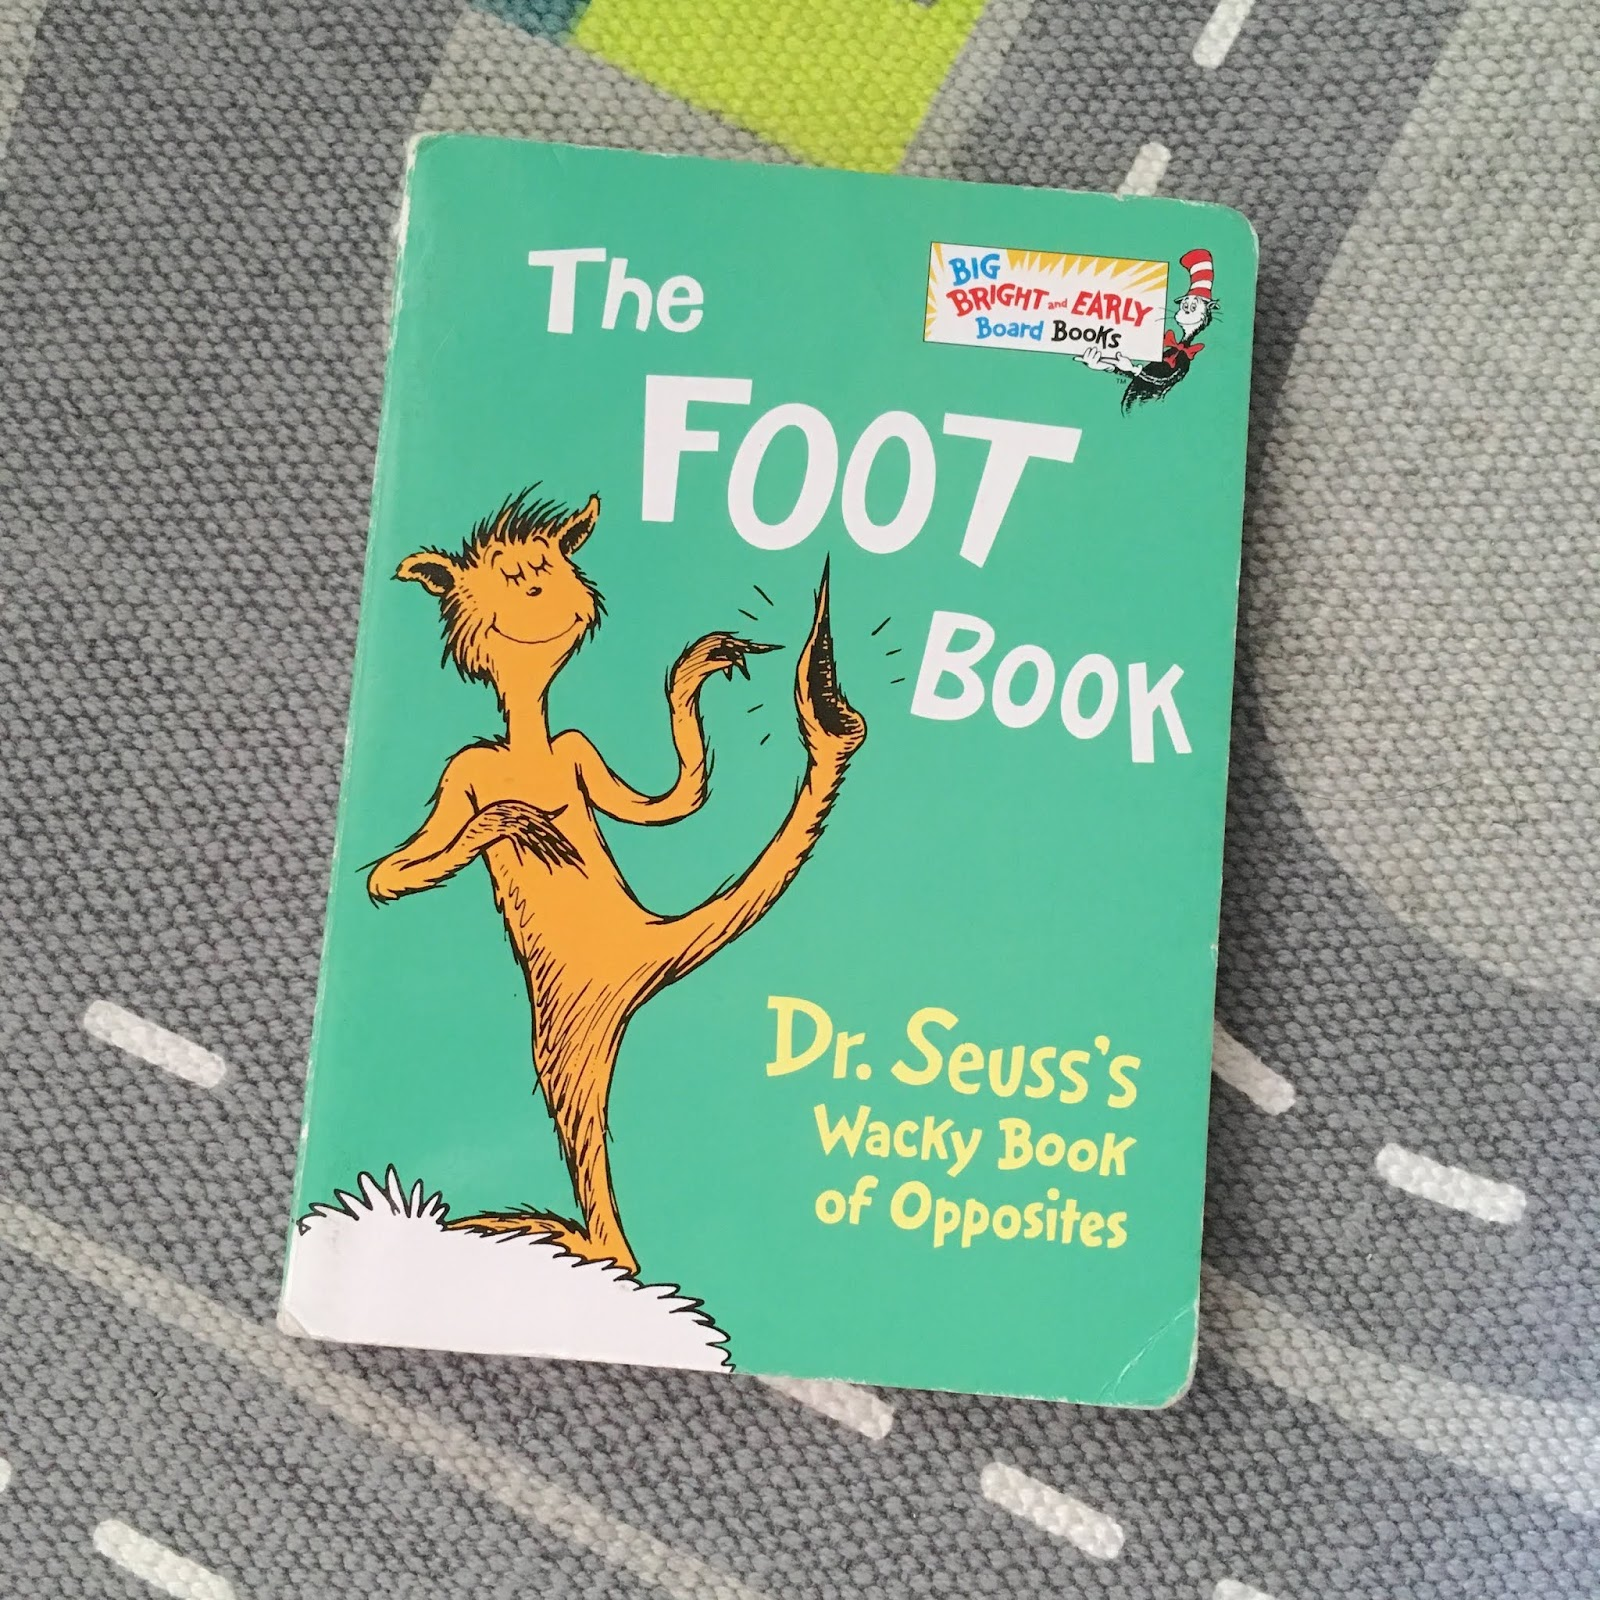 the foot book by dr seuss cover